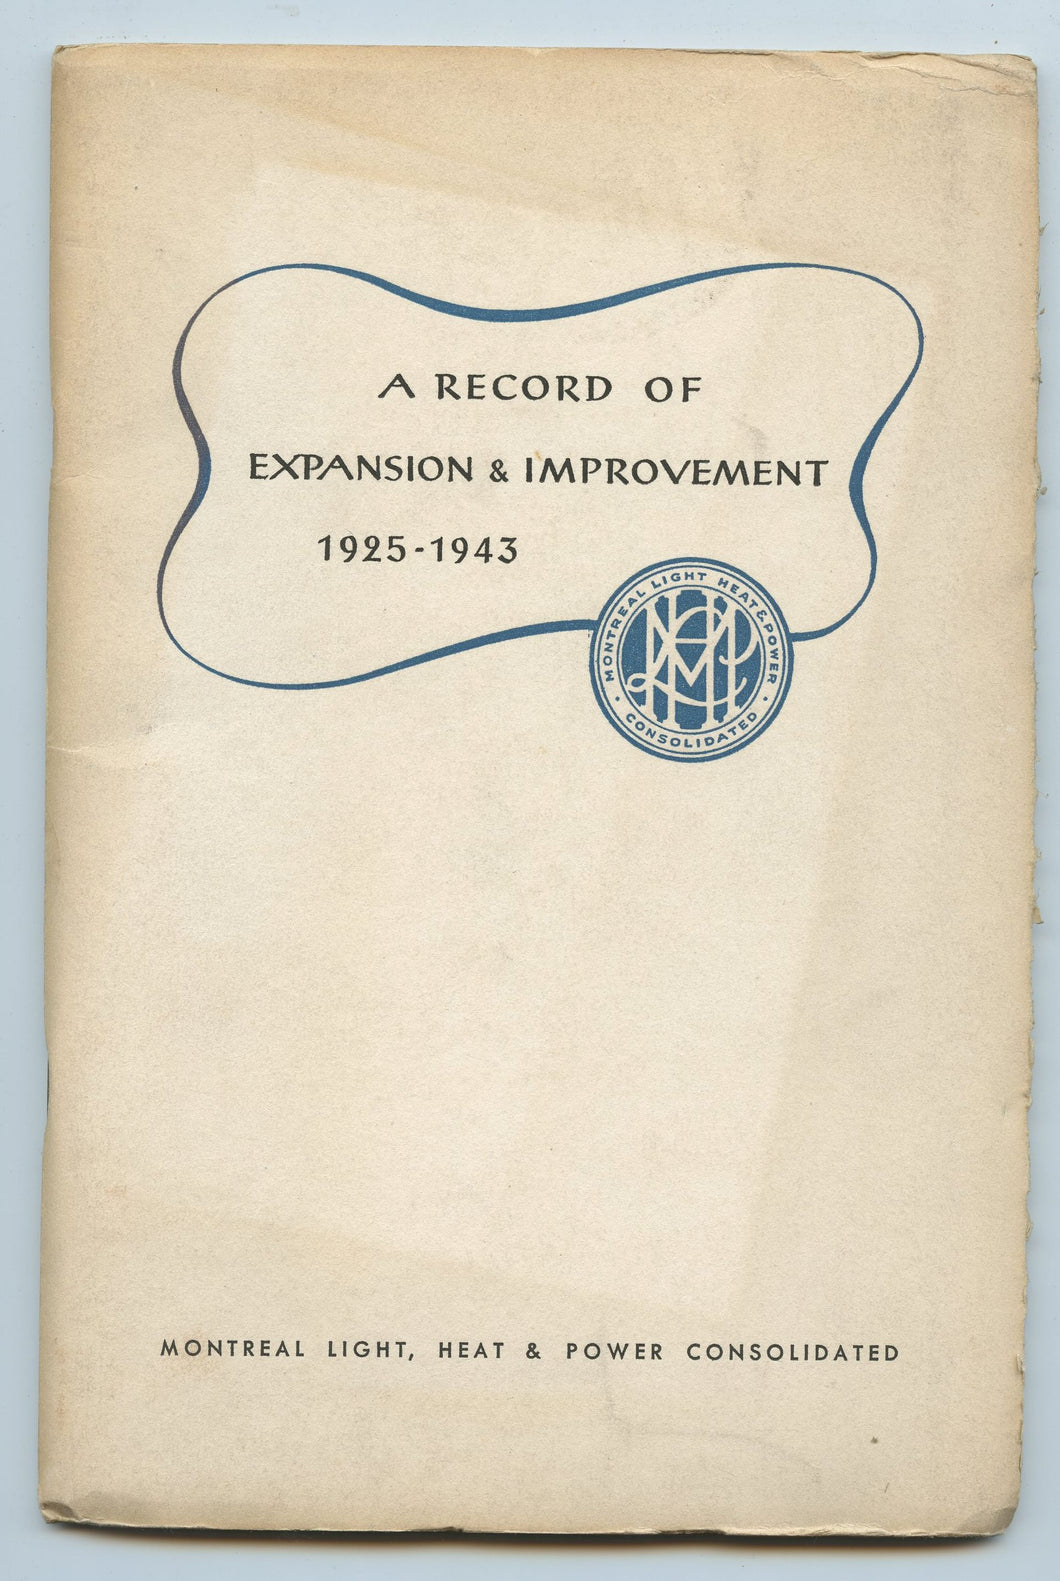 A Record of Expansion & Improvement 1925-1943